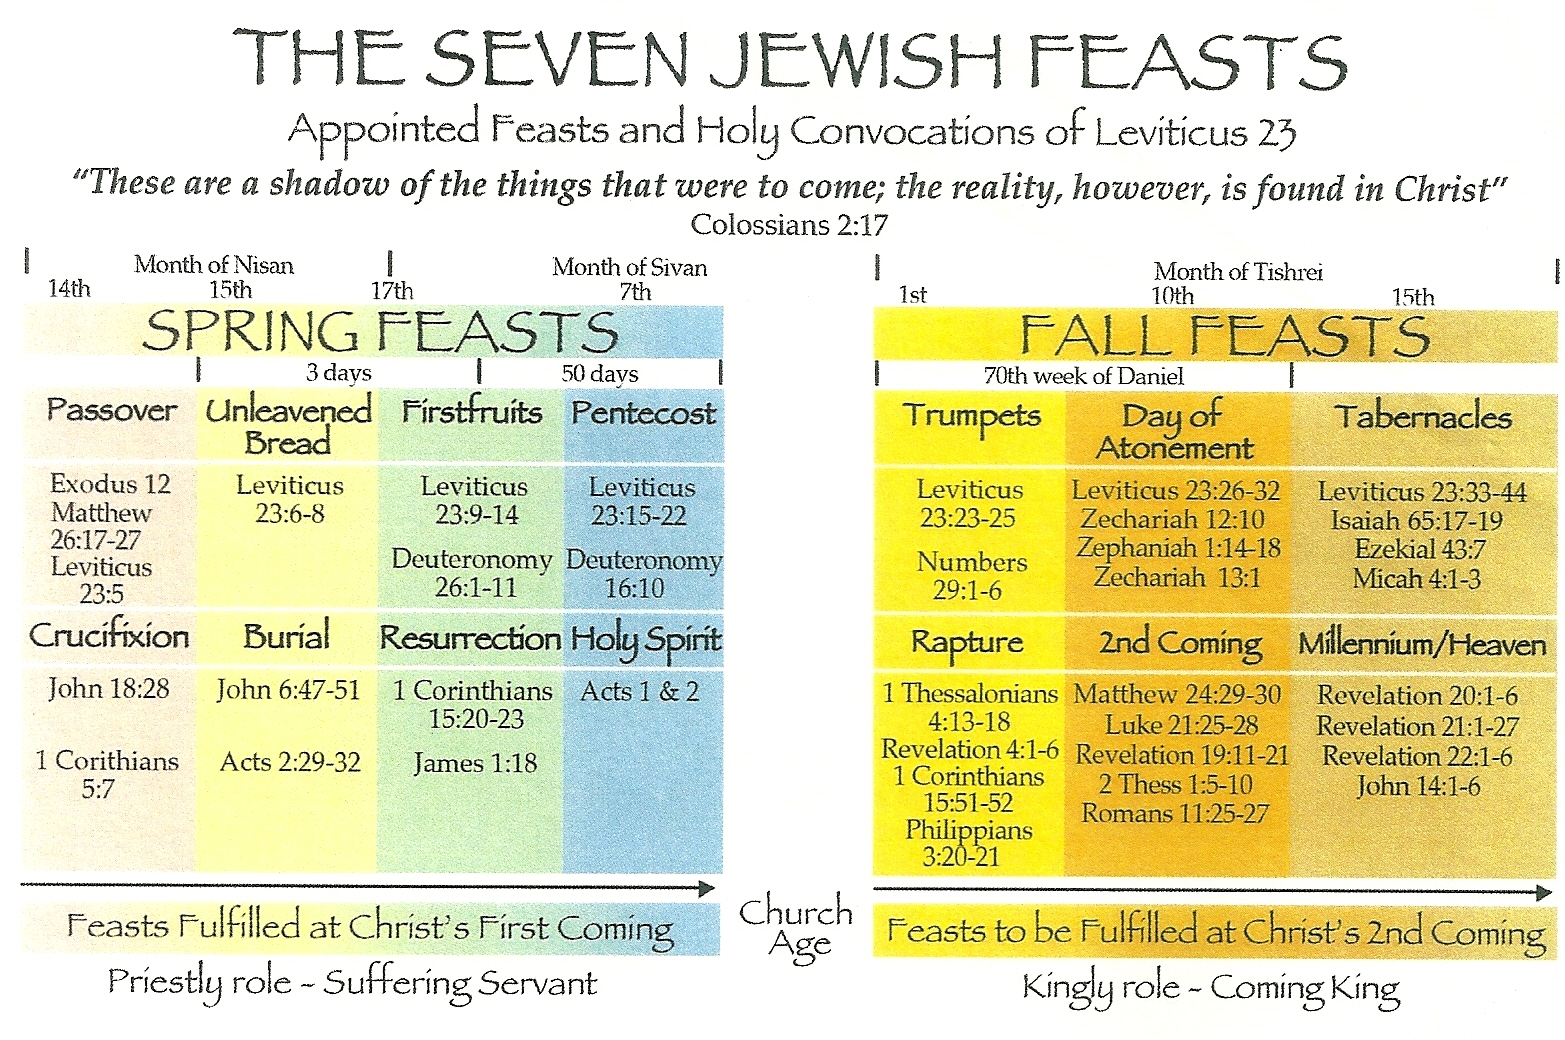 JEWISH FESTIVALS IN THE BIBLE